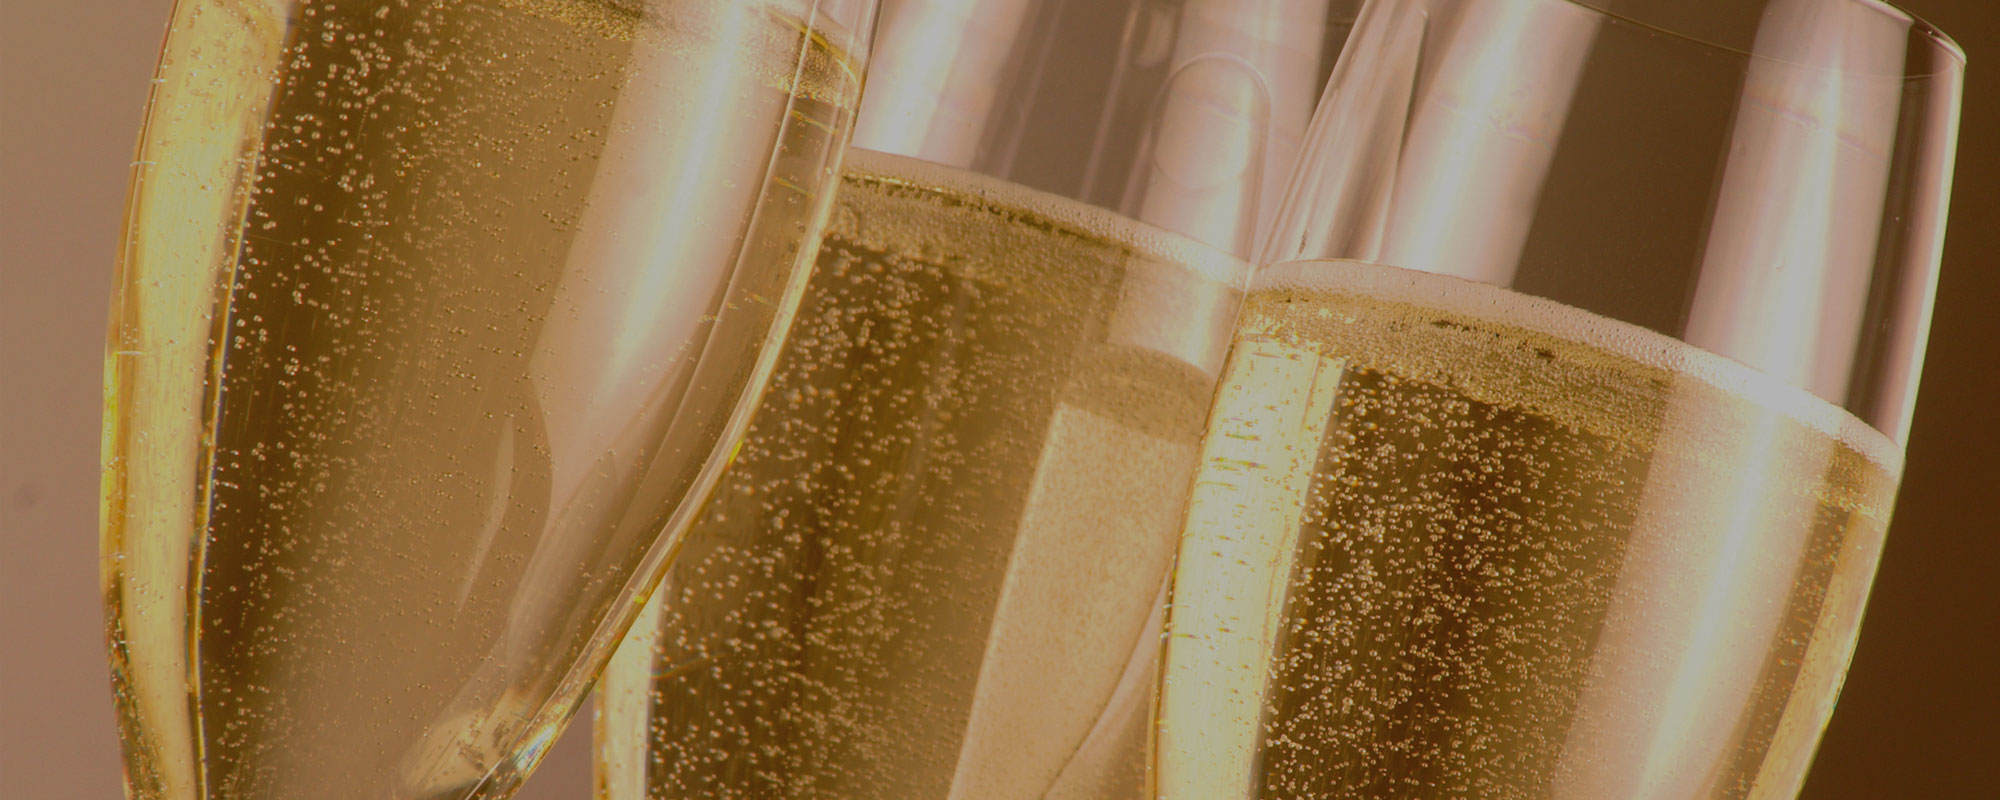 Avitaillement Champagnes